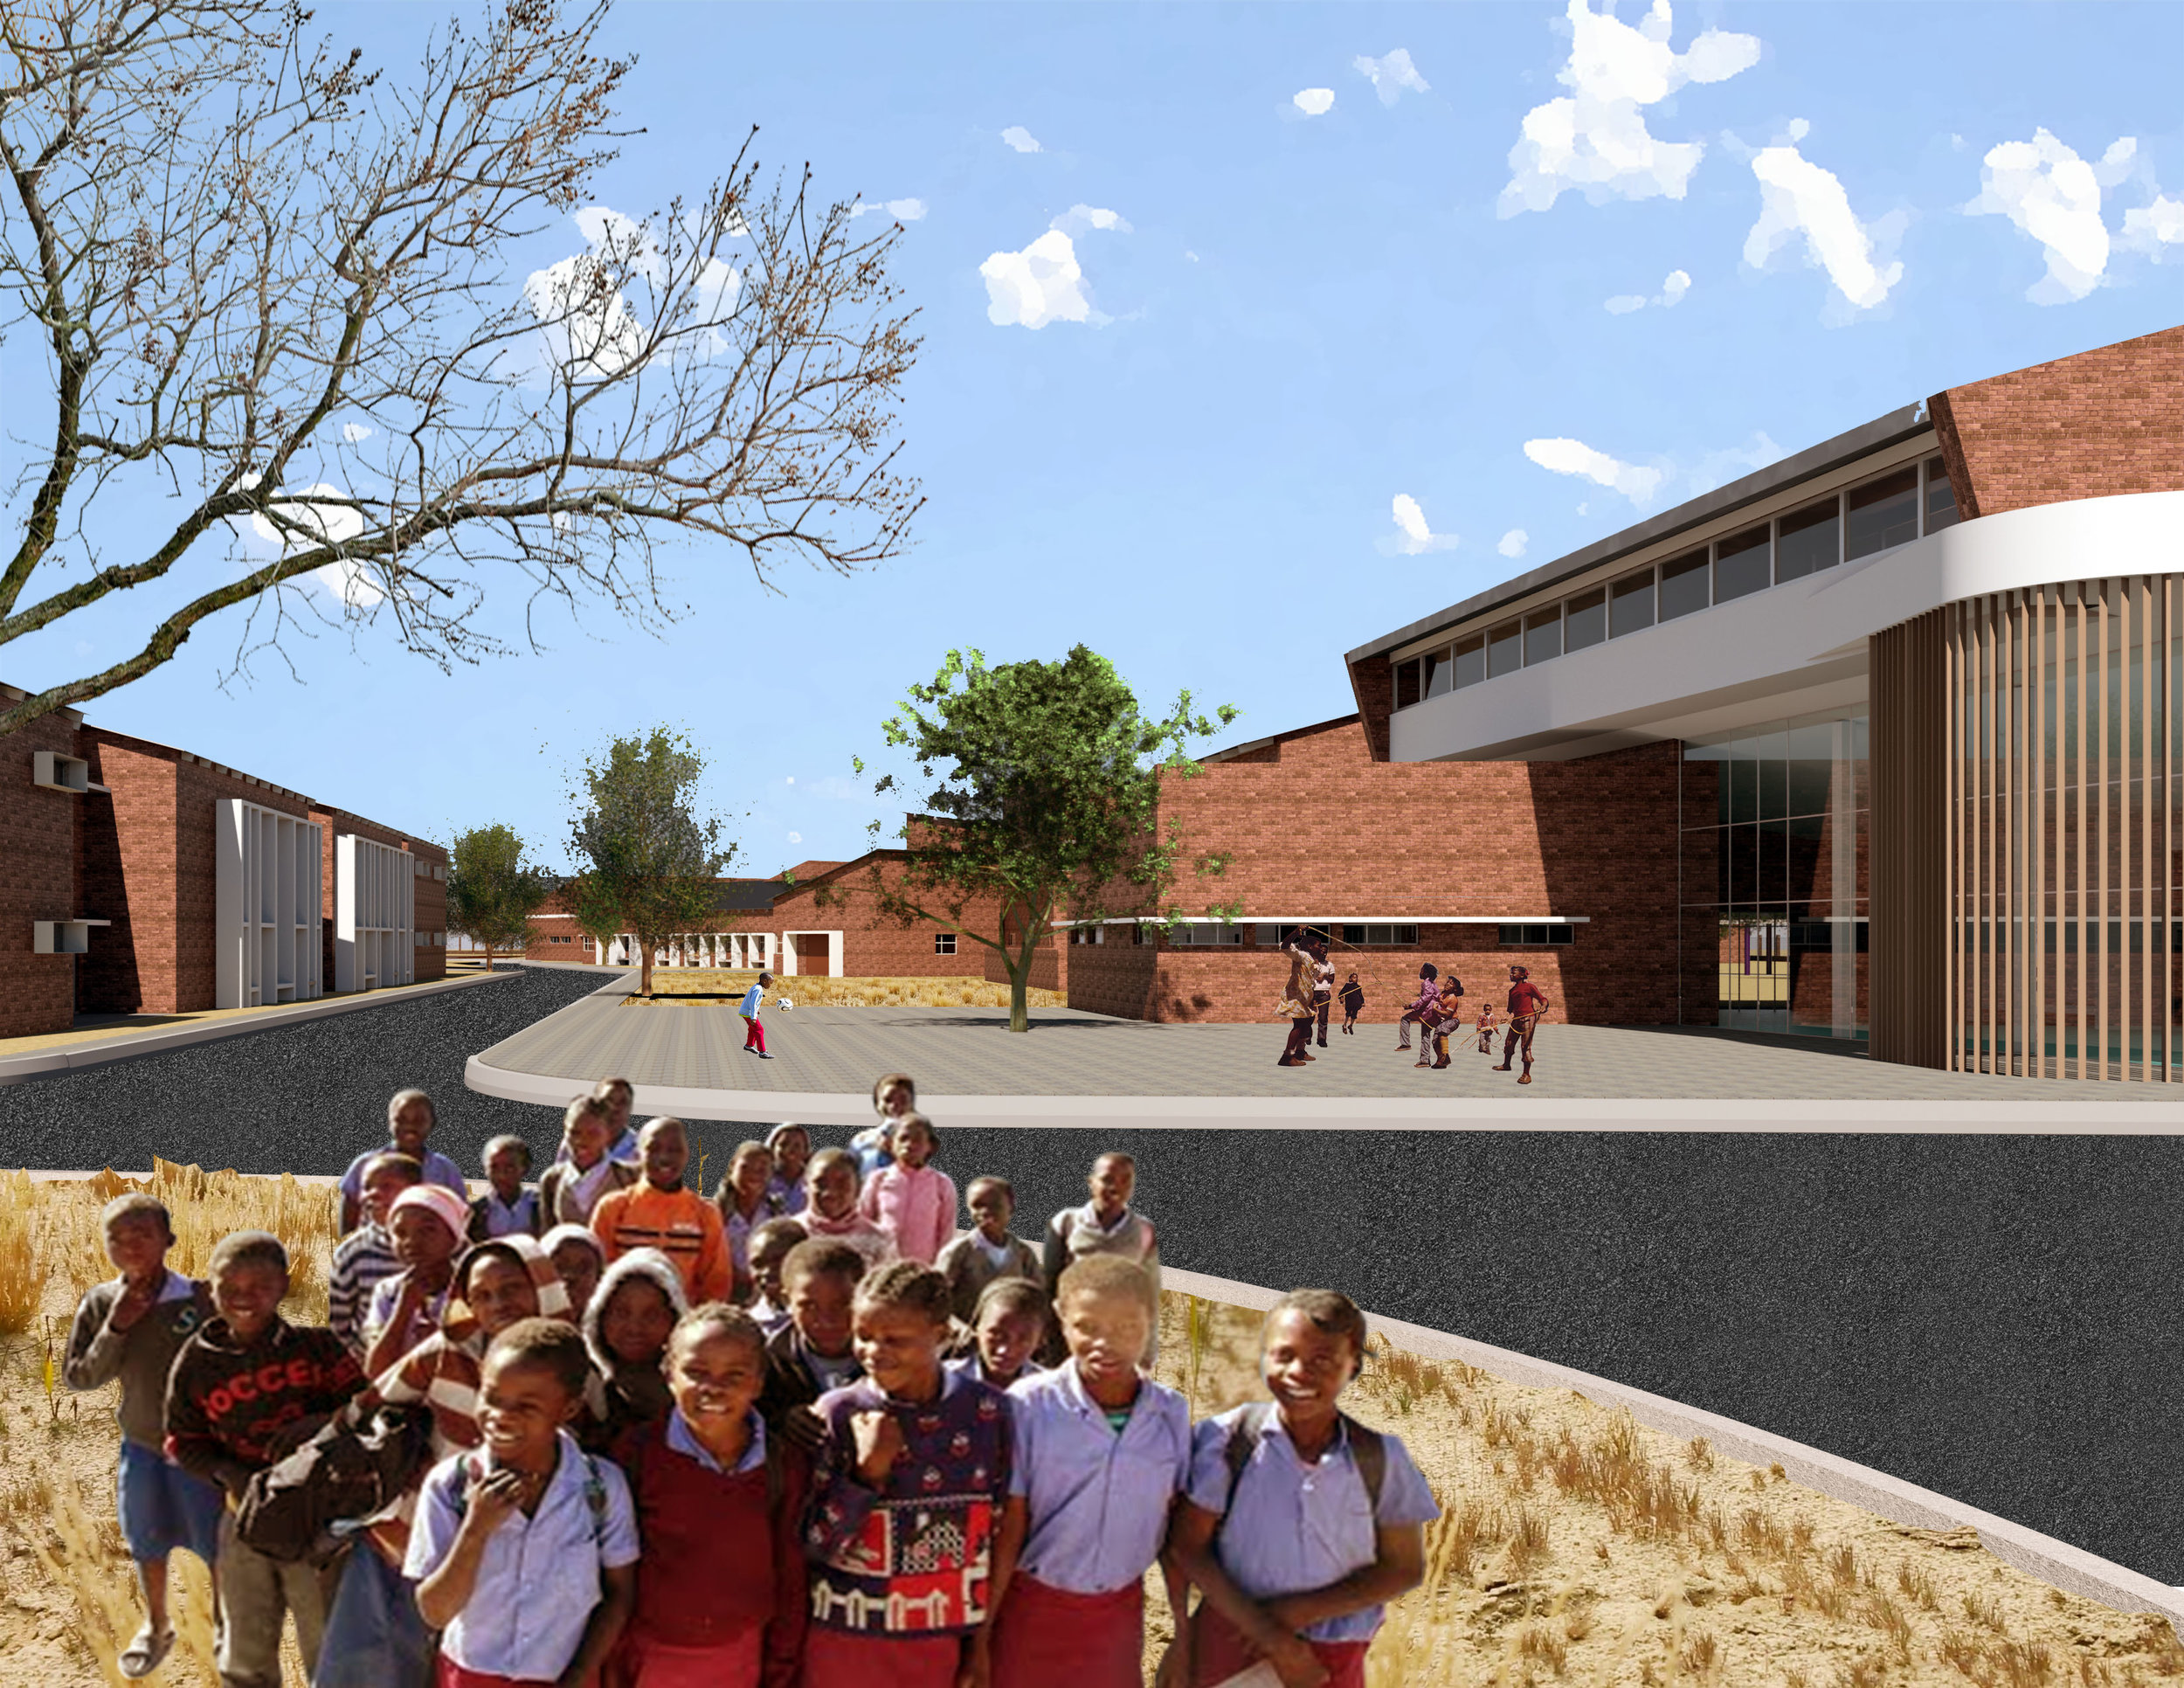 holy cross school in okongo - Okongo,Namibia